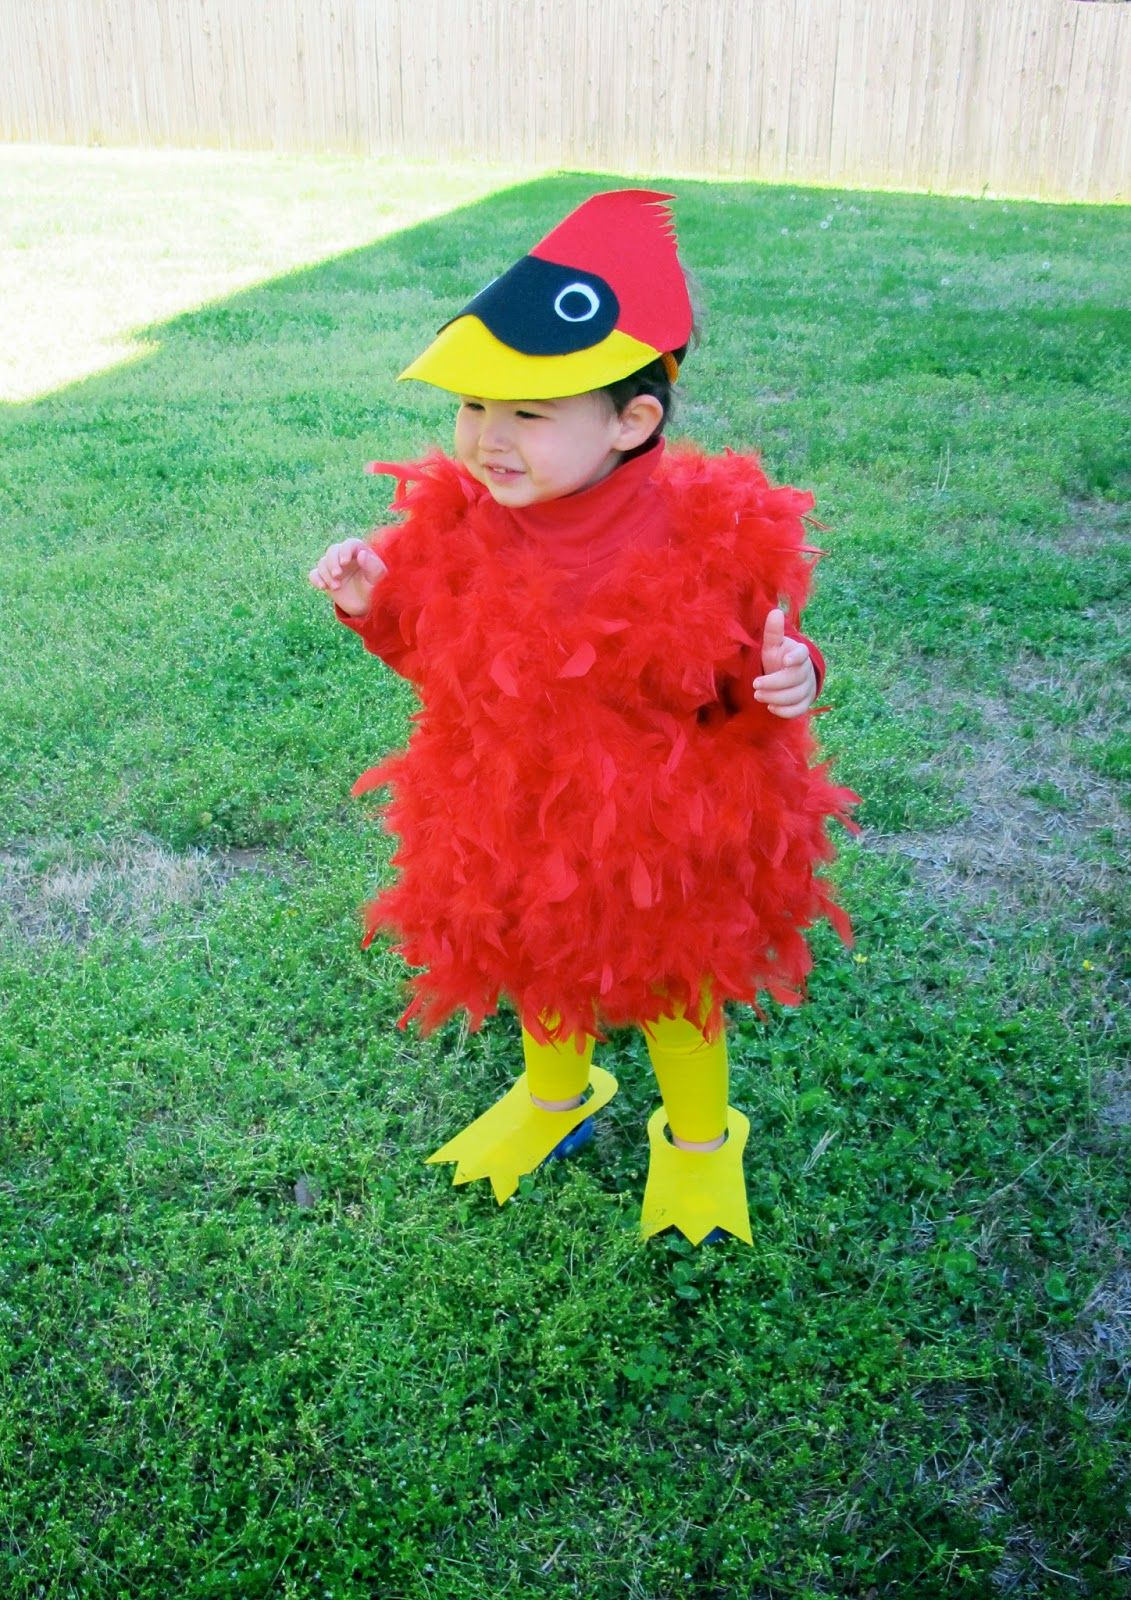 BABY CARDINAL BIRD love and lion HOMEMADE HALLOWEEN COSTUMES FOR LITTLES & BABY CARDINAL BIRD love and lion: HOMEMADE HALLOWEEN COSTUMES FOR ...